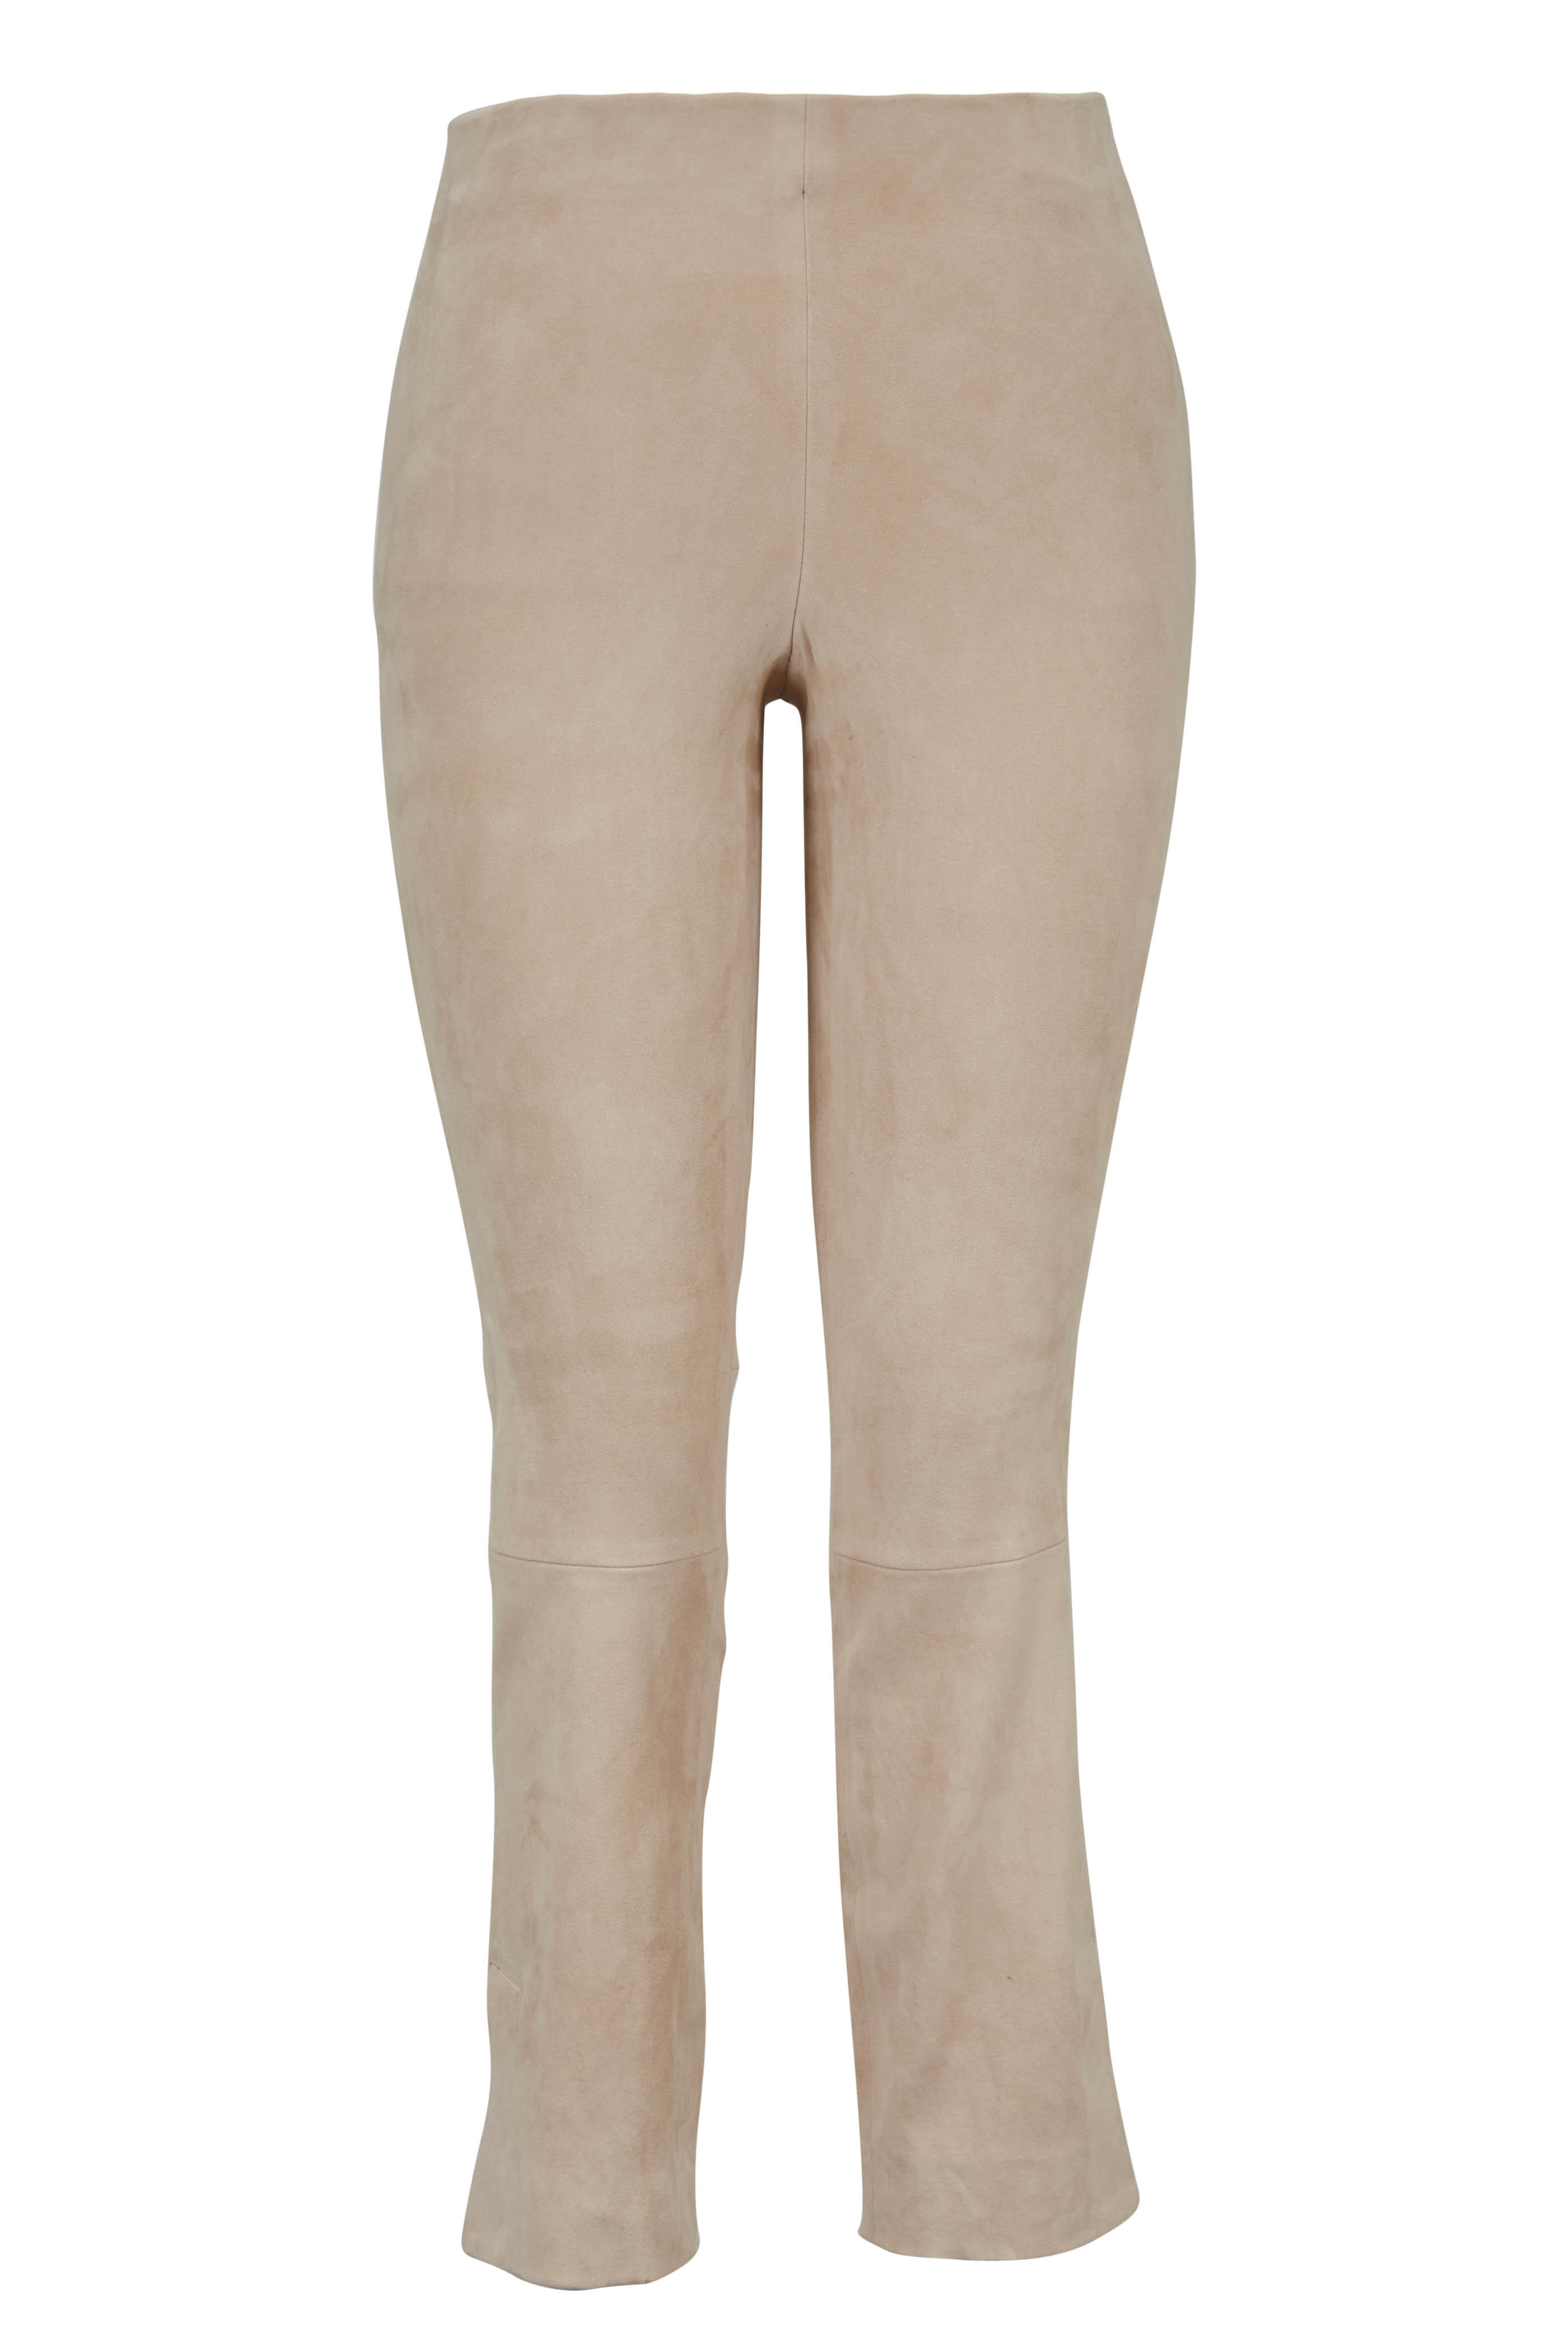 73cfccc5f9a948 Vince - Sandalwood Stretch Suede Split-Hem Cropped Pant | Mitchell ...